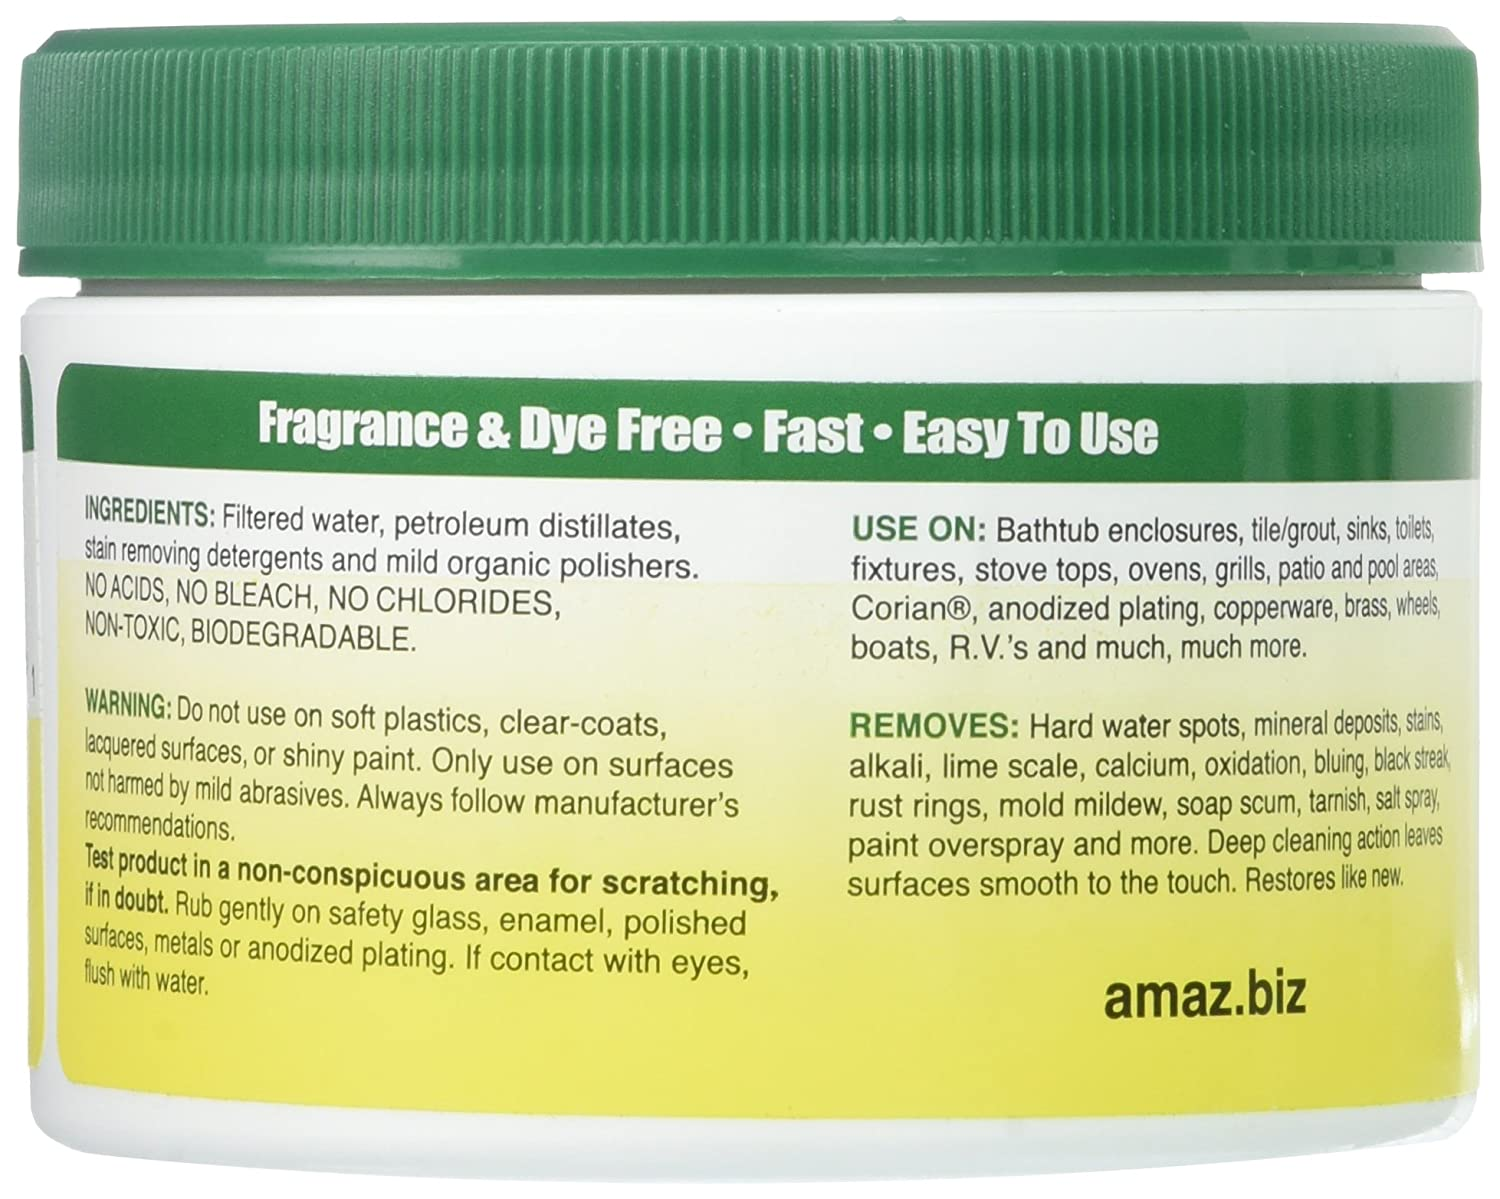 Amazon.com: AMAZ 11107 WATER STAIN REMOVER 14 OZ with scrubber ...